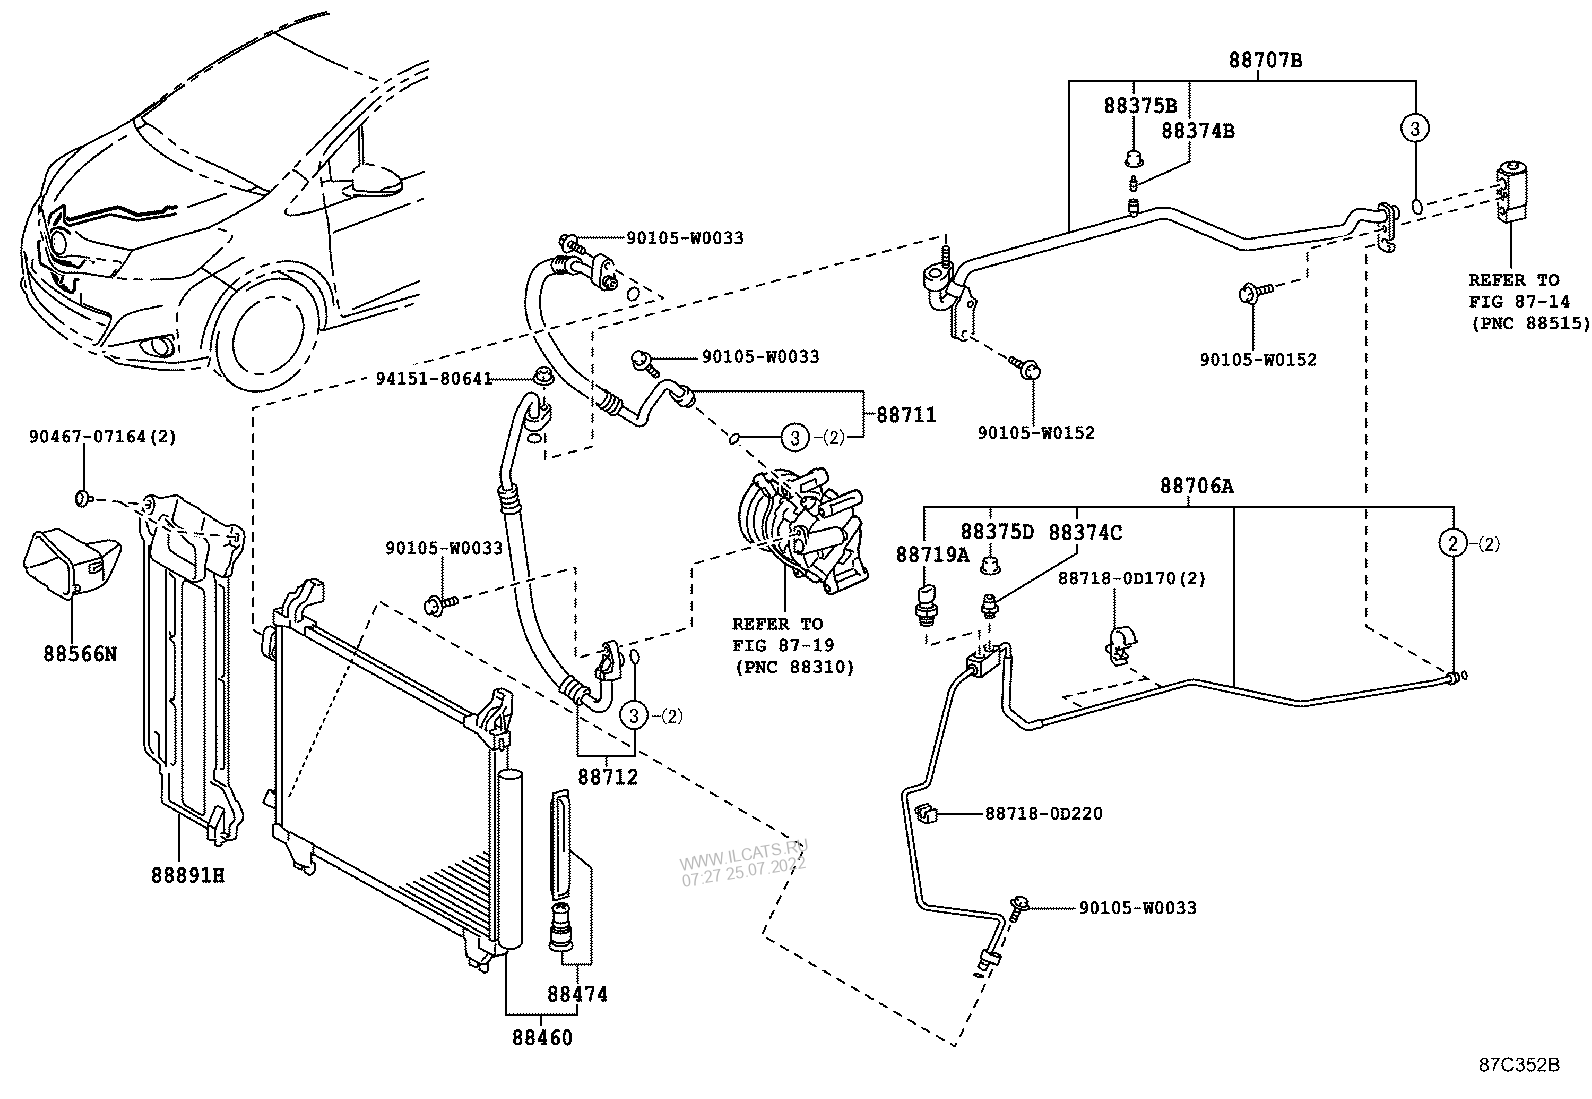 HEATING & AIR CONDITIONING - COOLER PIPING TOYOTA YARIS